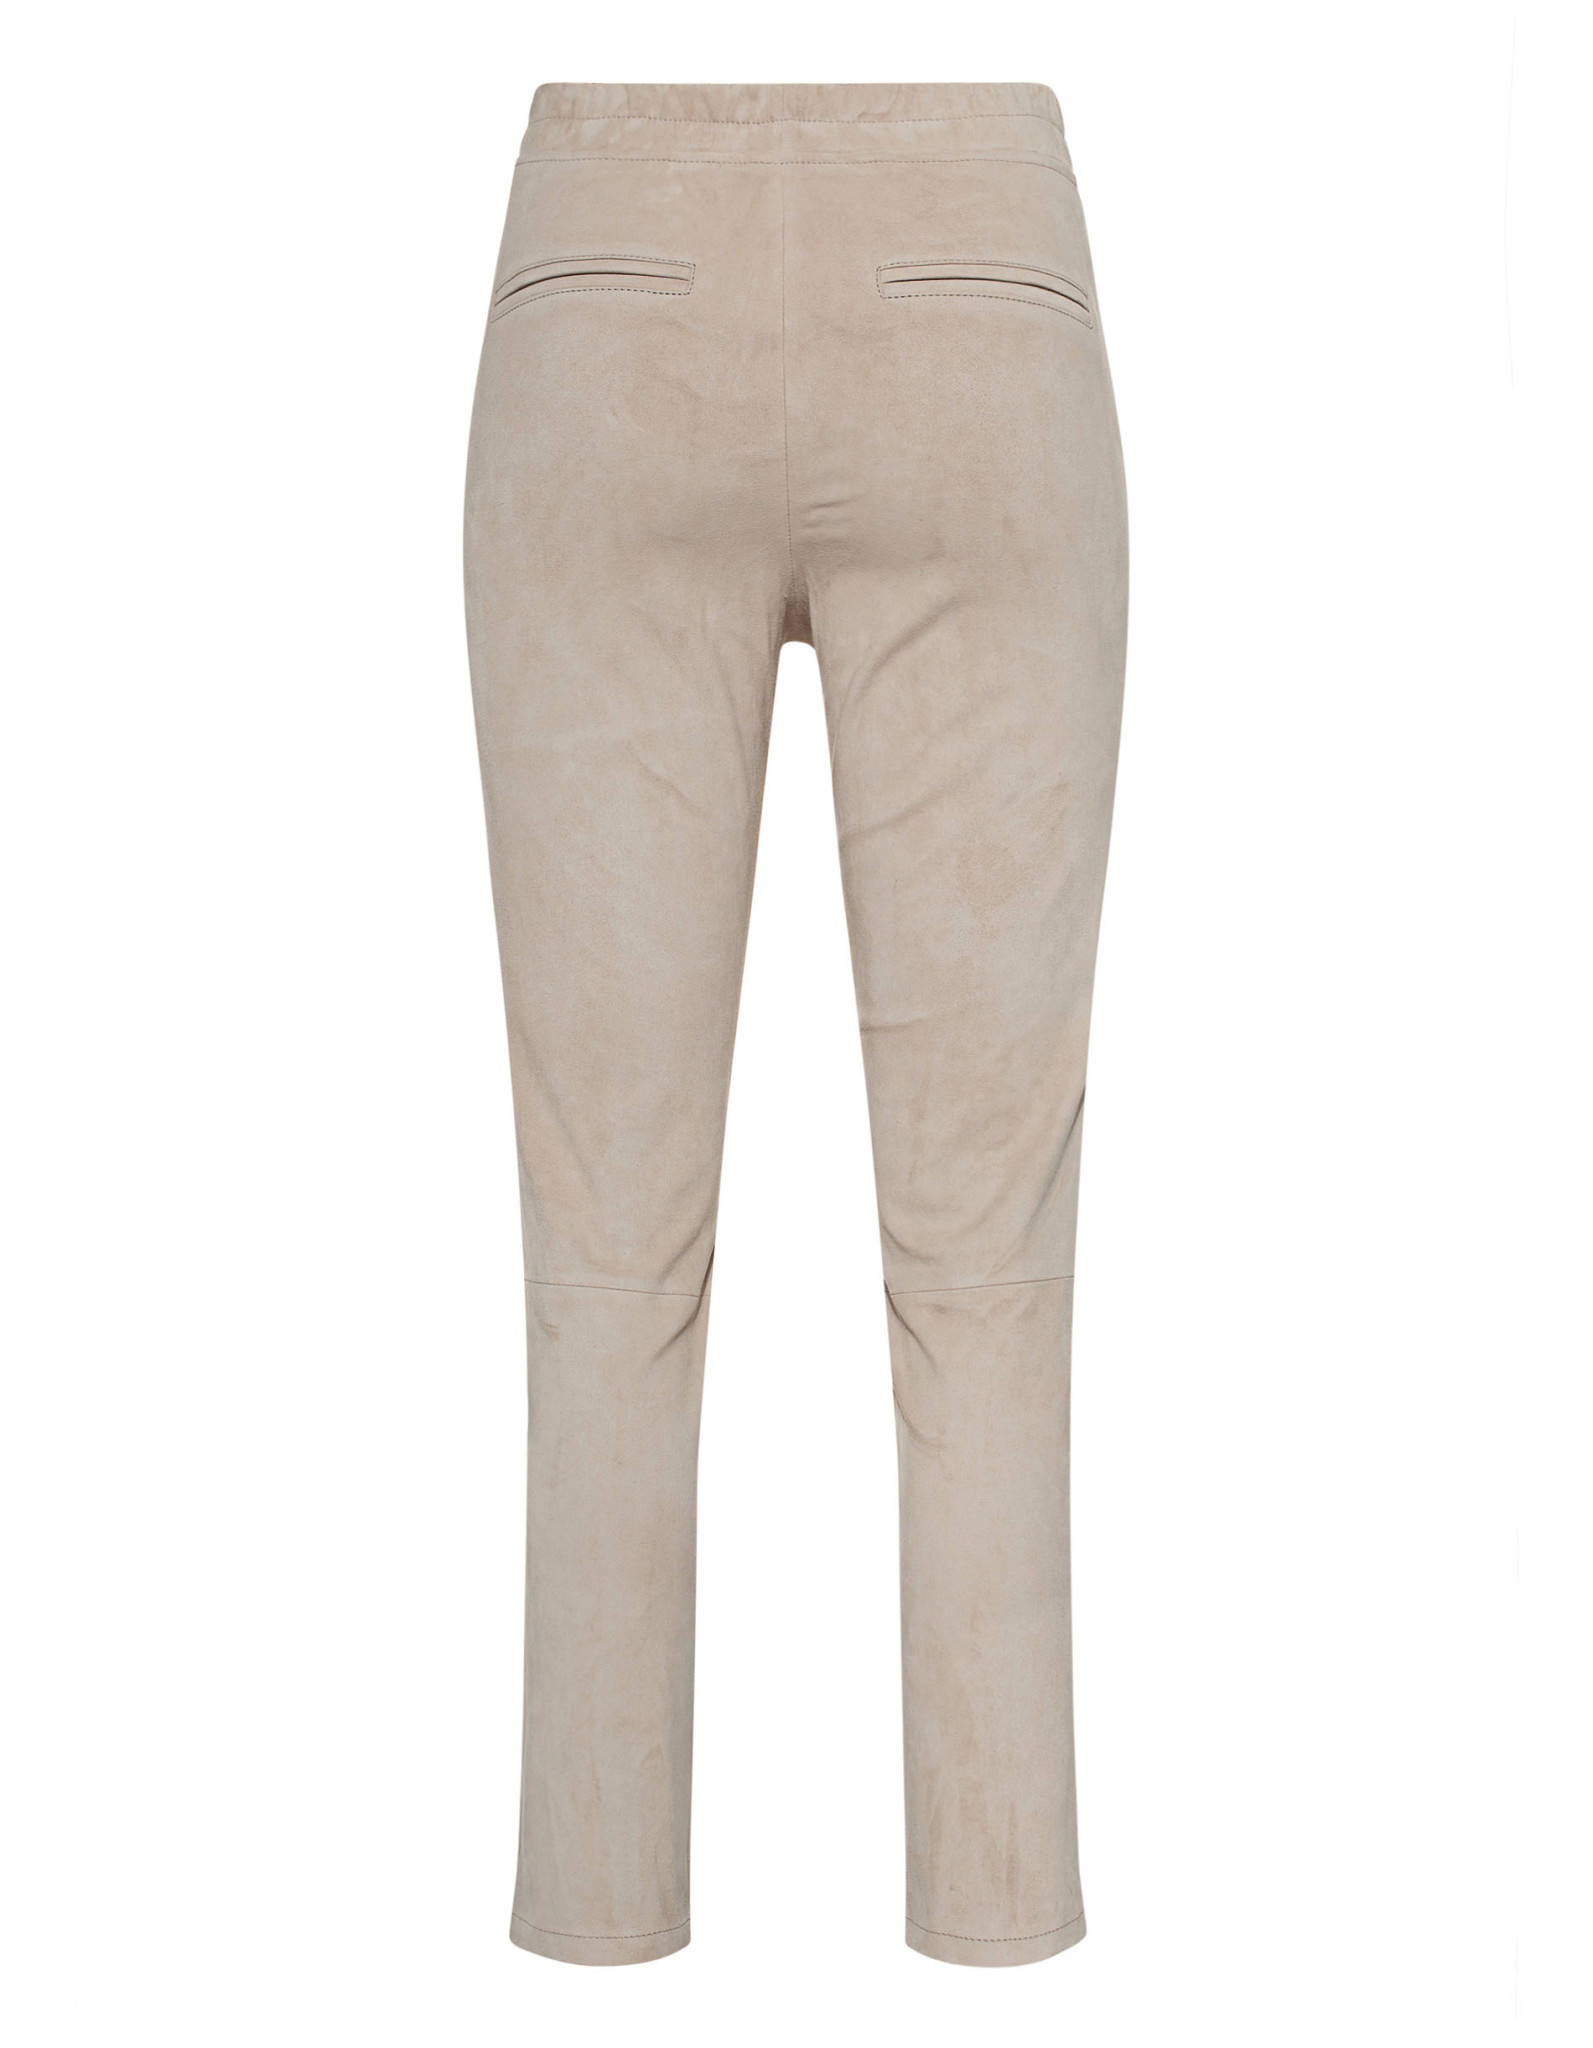 provence stretch suede pants Arma-5